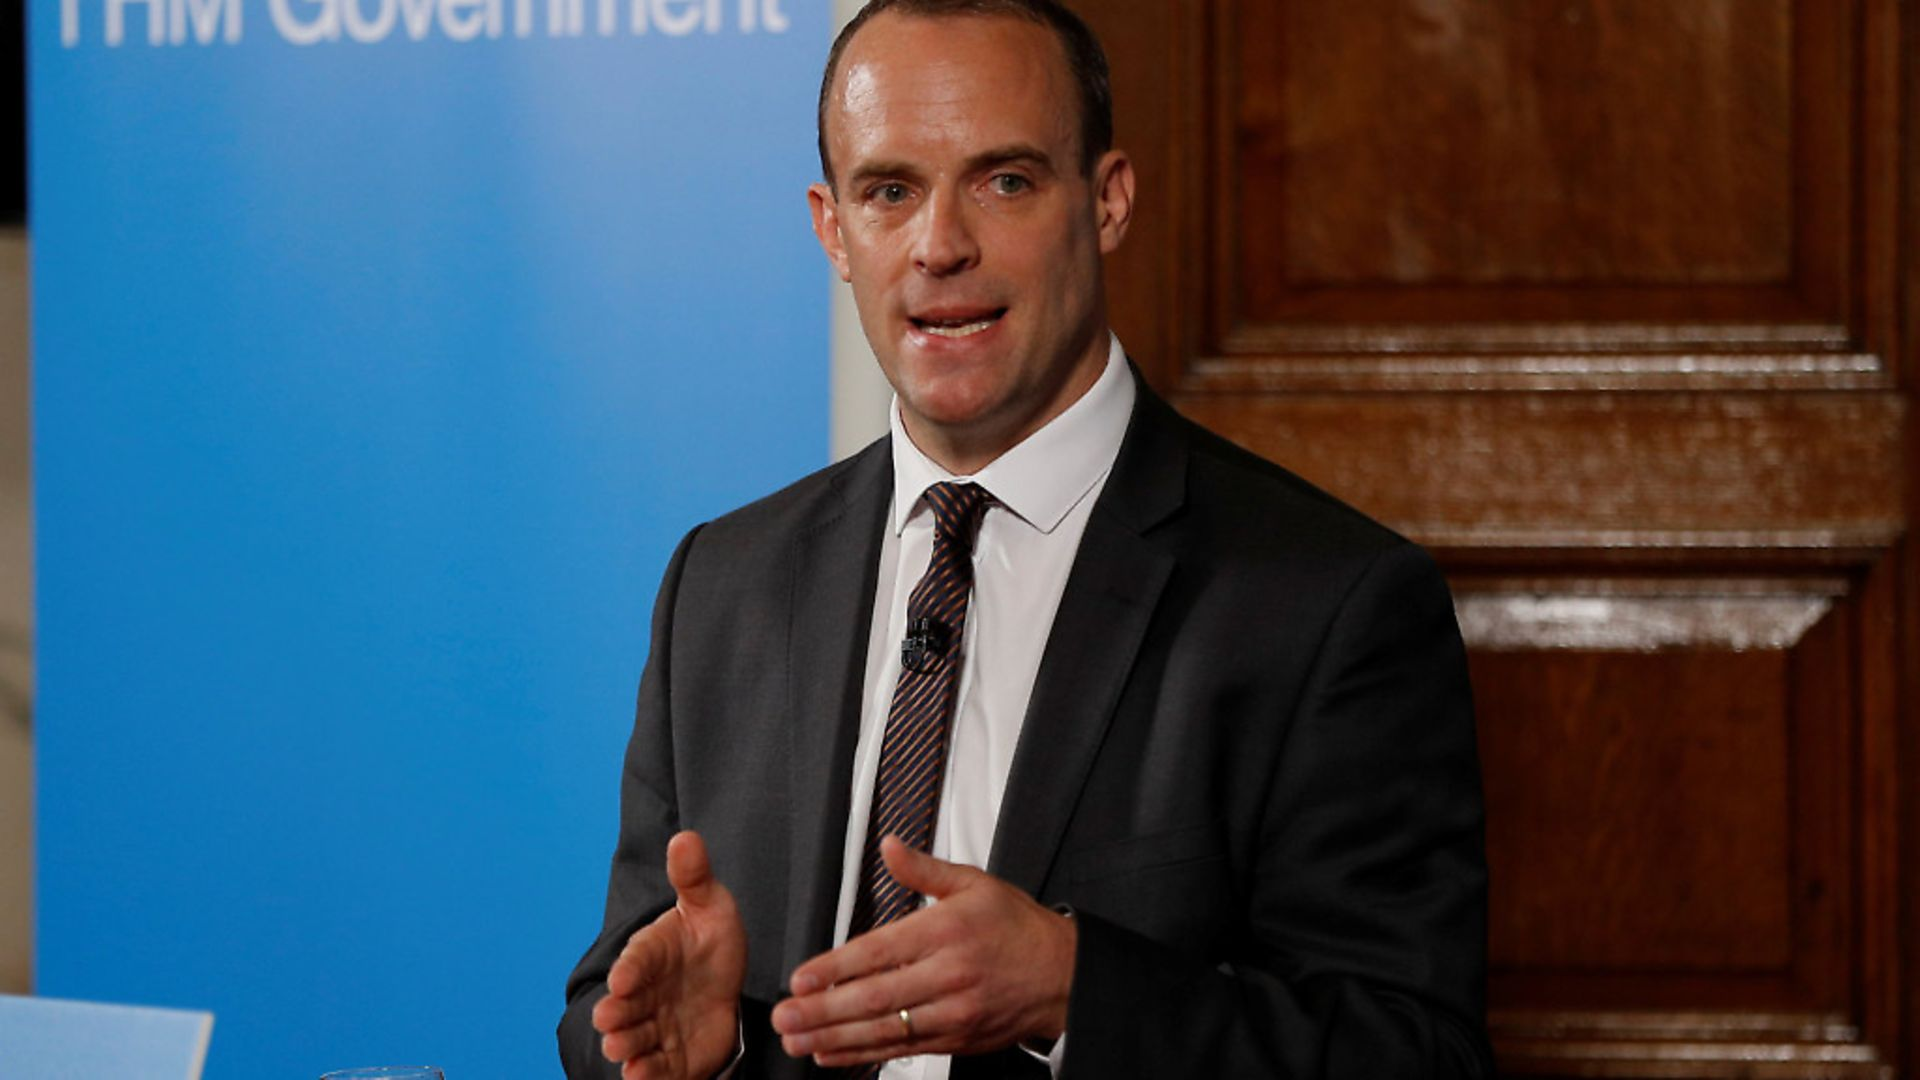 Dominic Raab will receive more than �16,000 in 'redundancy pay' from the taxpayer after quitting the Department for Exiting the EU. Picture: Peter Nicholls - WPA Pool/Getty Images - Credit: Getty Images